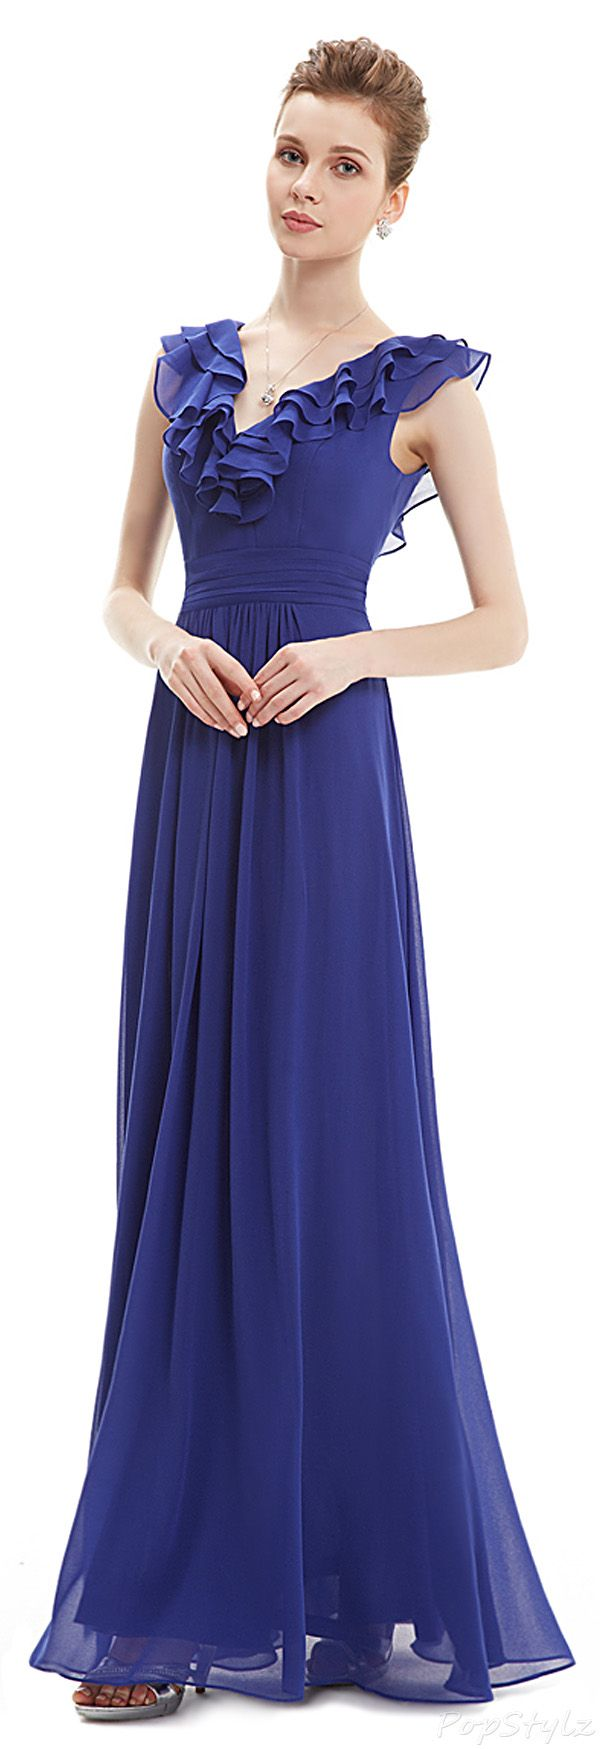 Double vneck ruffles long evening dress clothes for gals